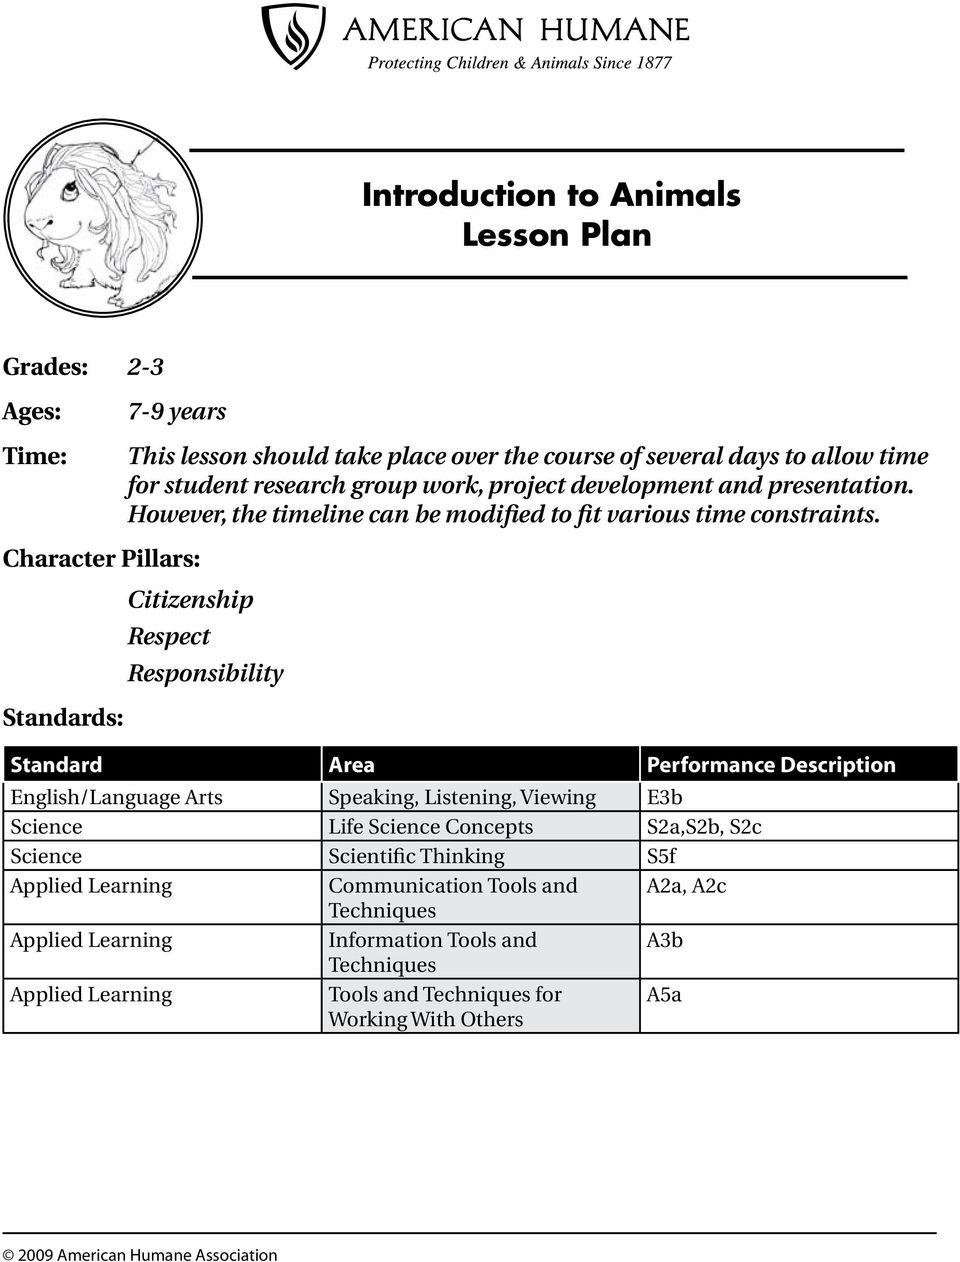 Introduction to Animals Lesson Plan - PDF